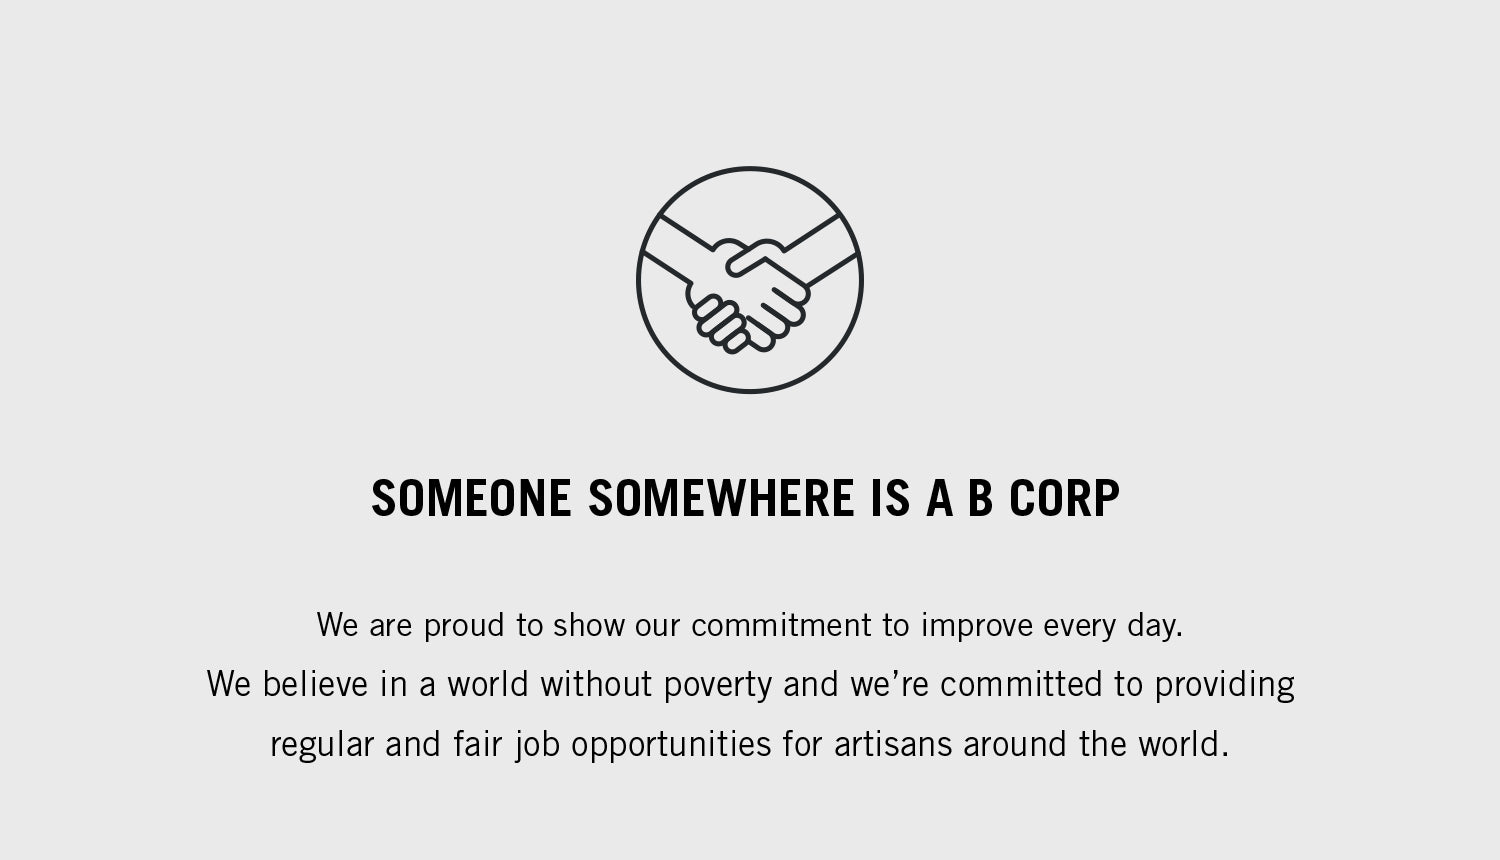 Someone Somewhere is a B Corp. We are proud to show our commitment to improve every day. We believe in a world without poverty and we're committed to providing regular and fair job opportunities for artisans around the world.